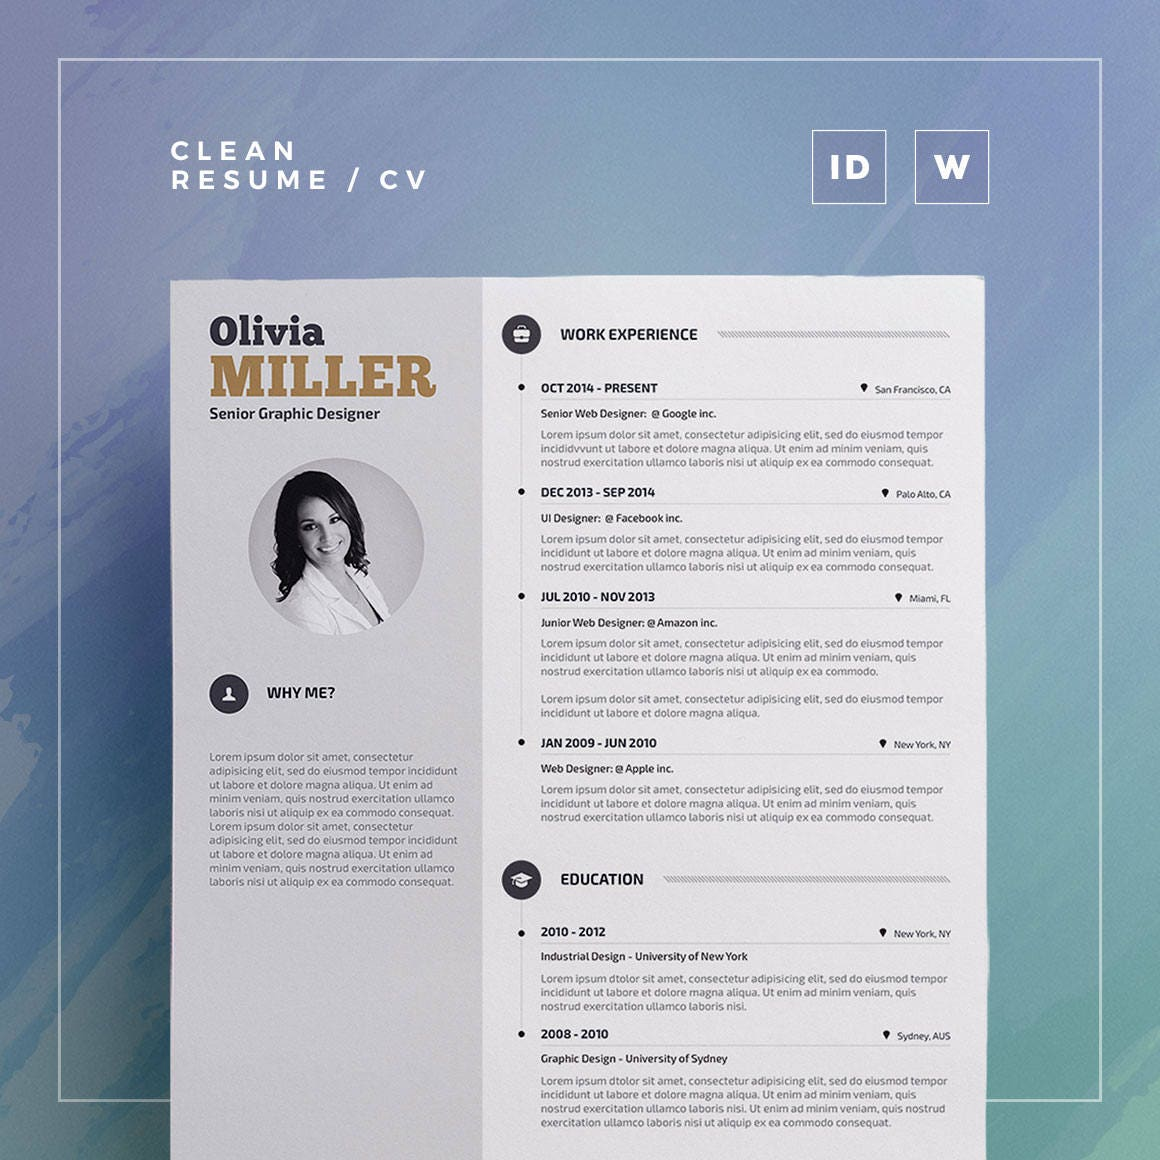 Clean Resume/Cv Olivia Word and Indesign